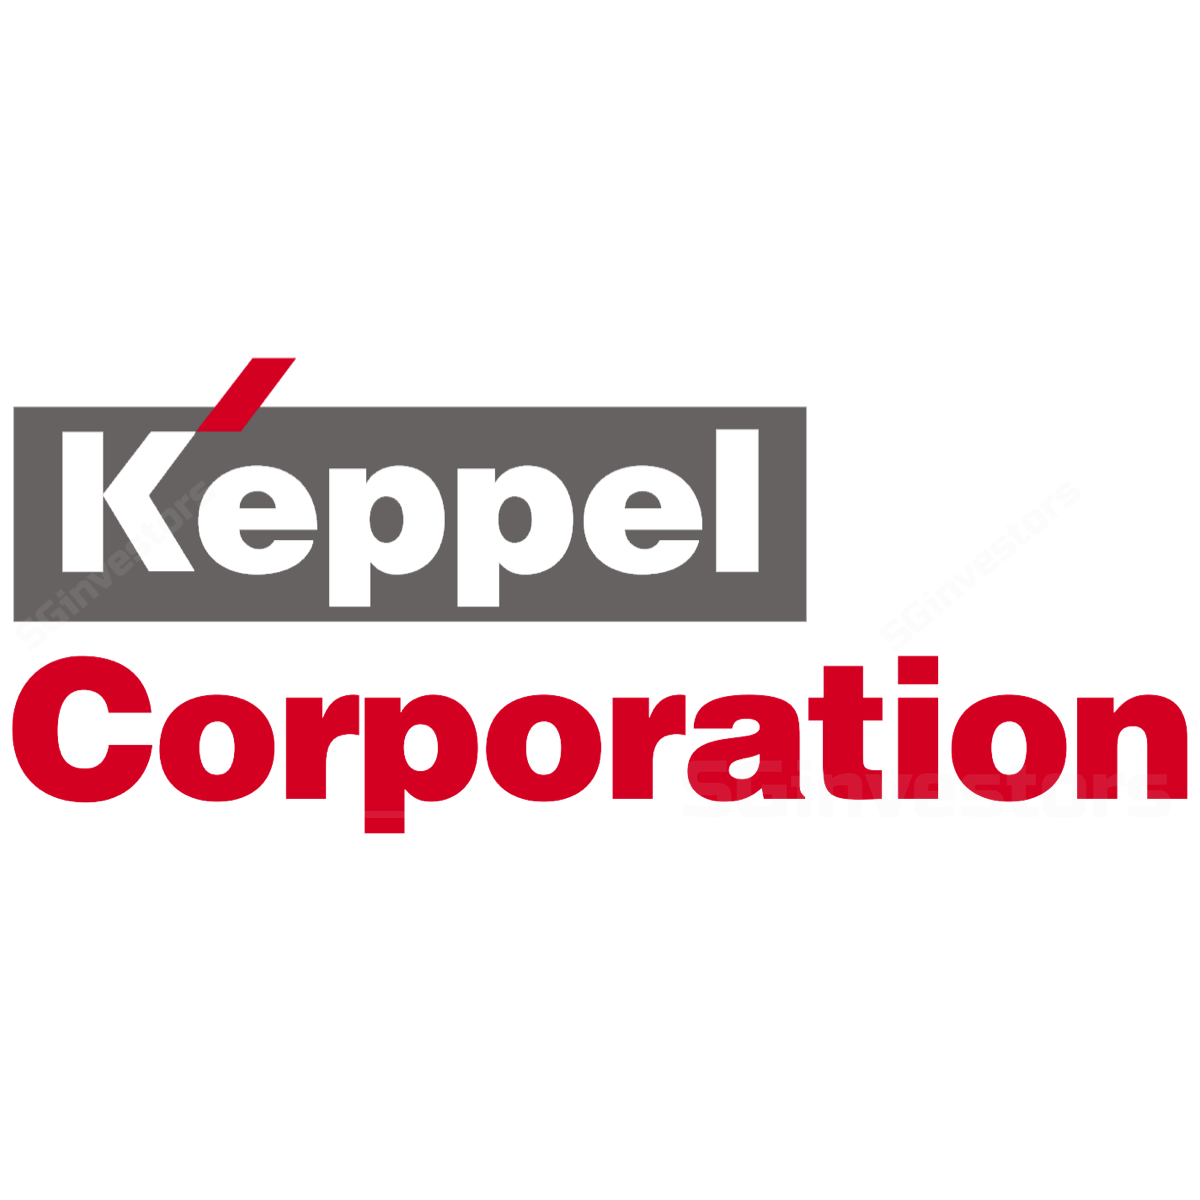 Keppel Corporation - DBS Vickers 2017-04-21: Boosted by divestment gains